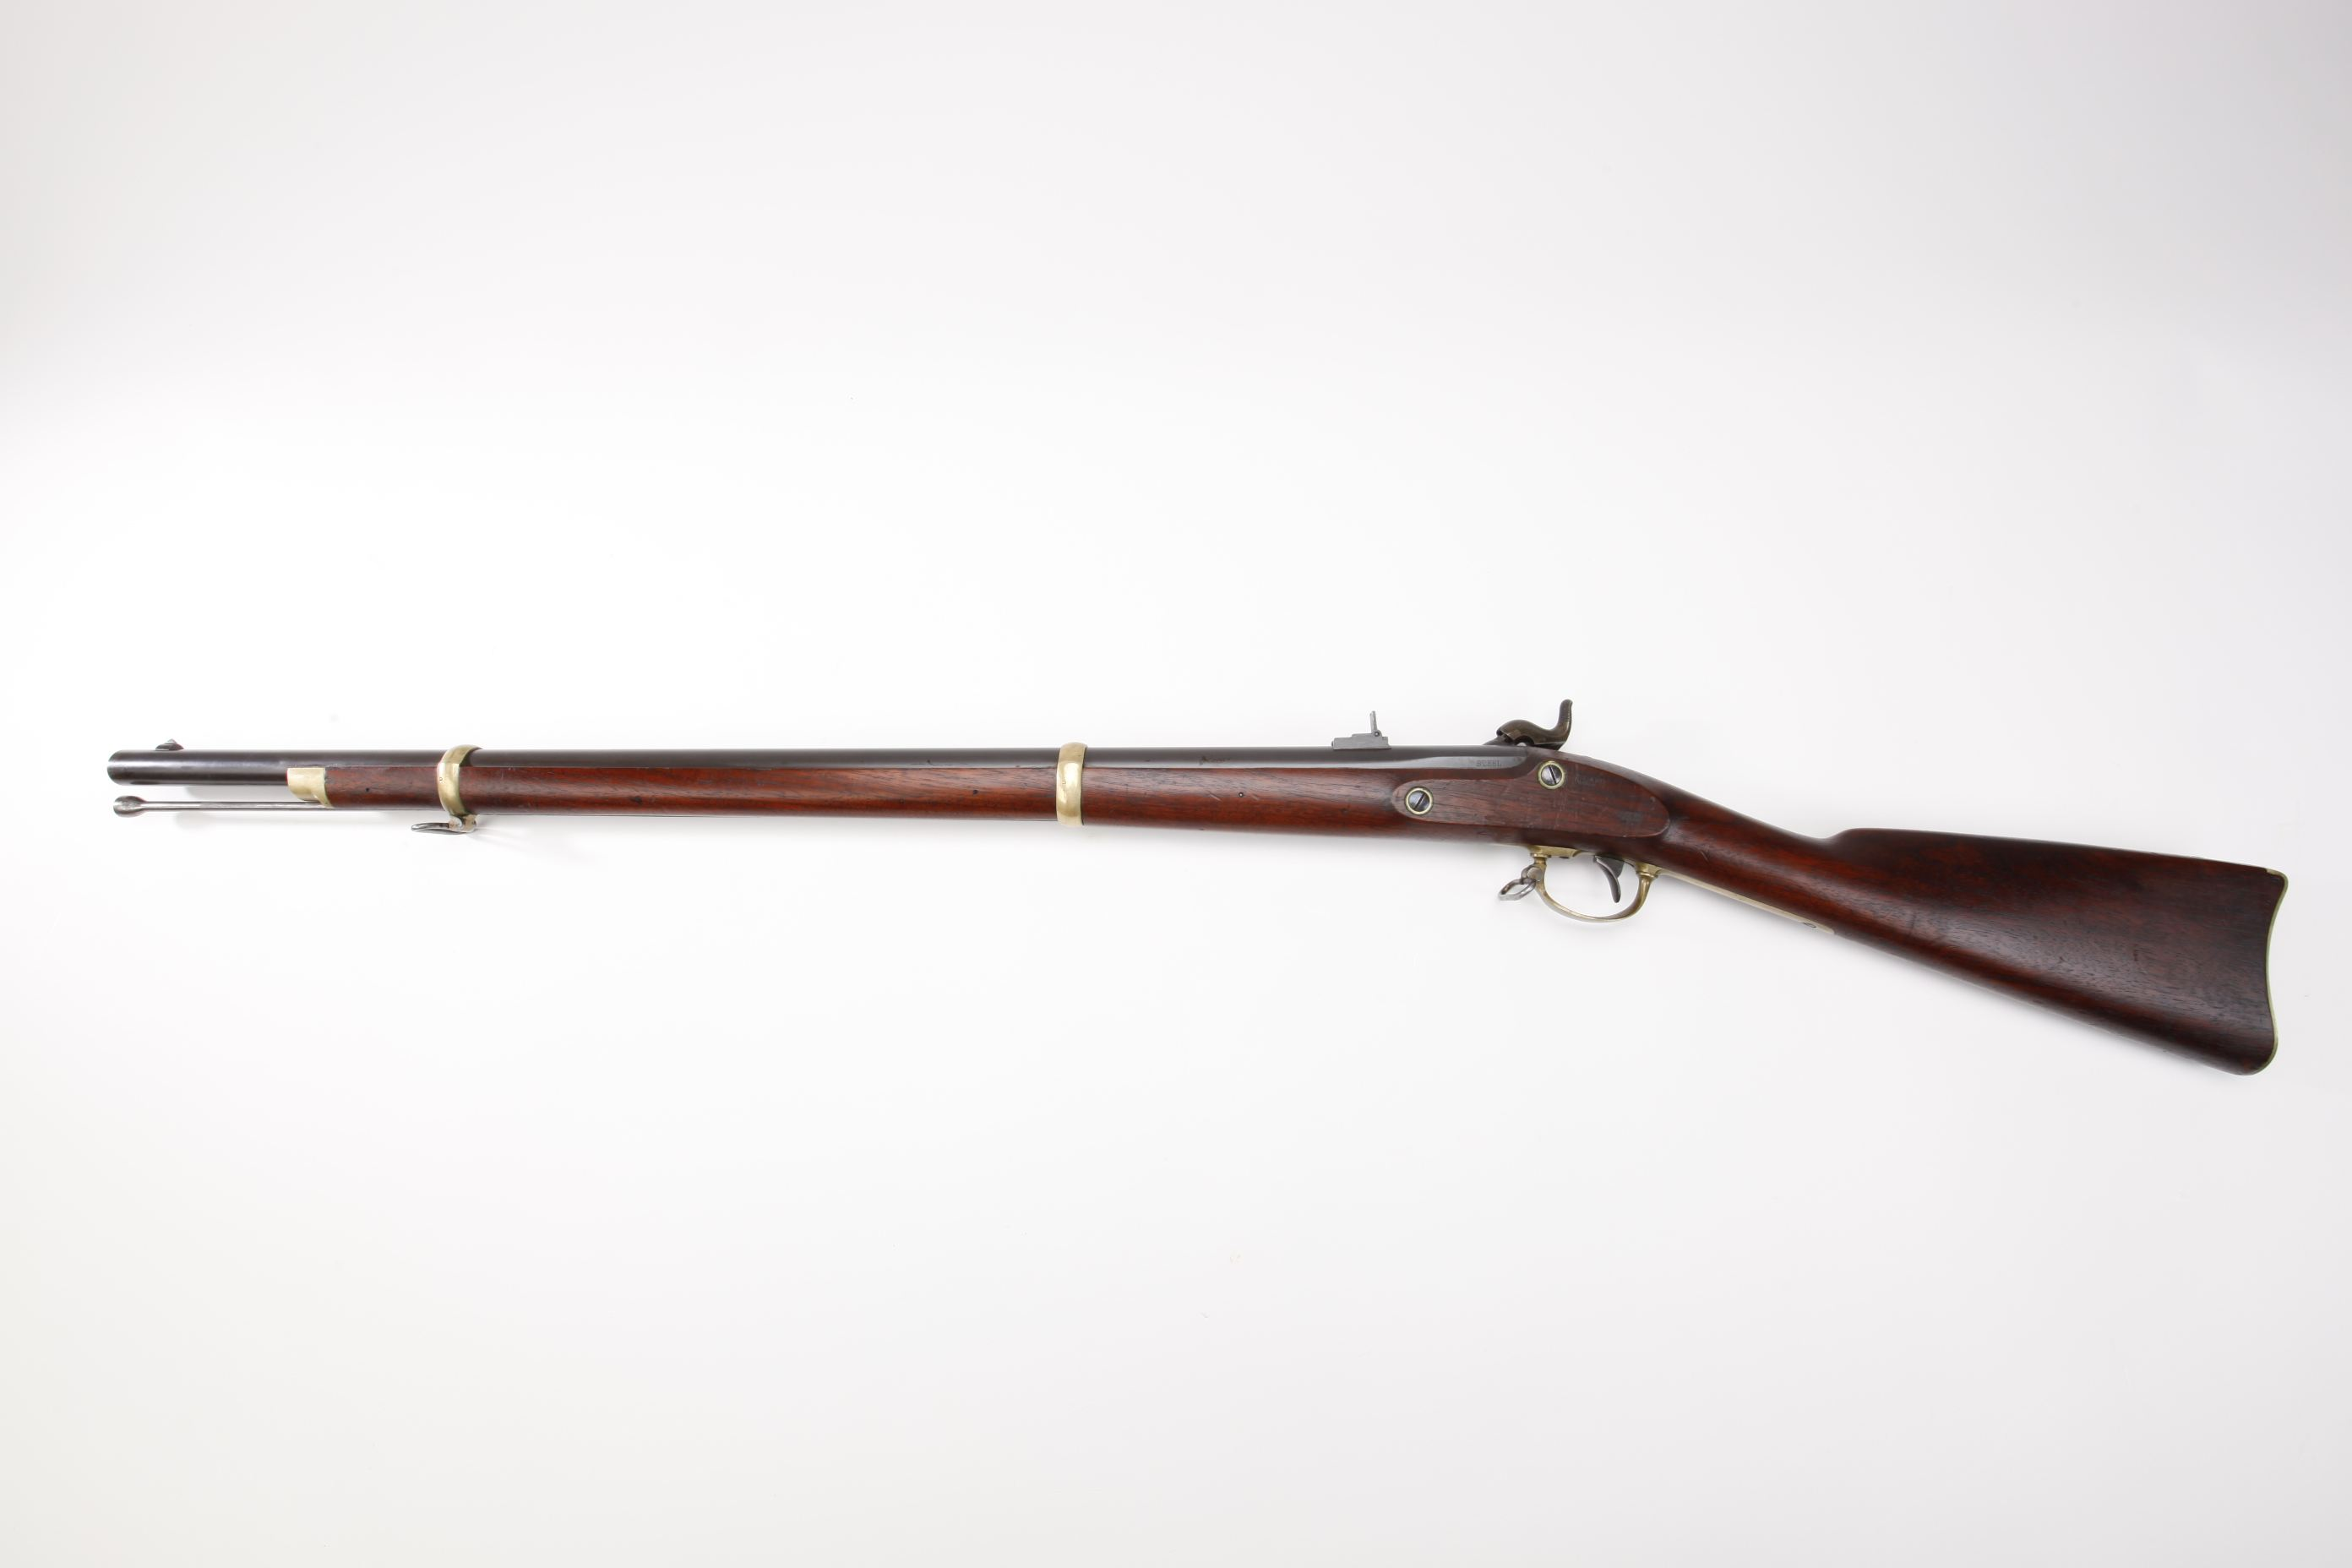 Remington Model 1863 Percussion Contract Rifle